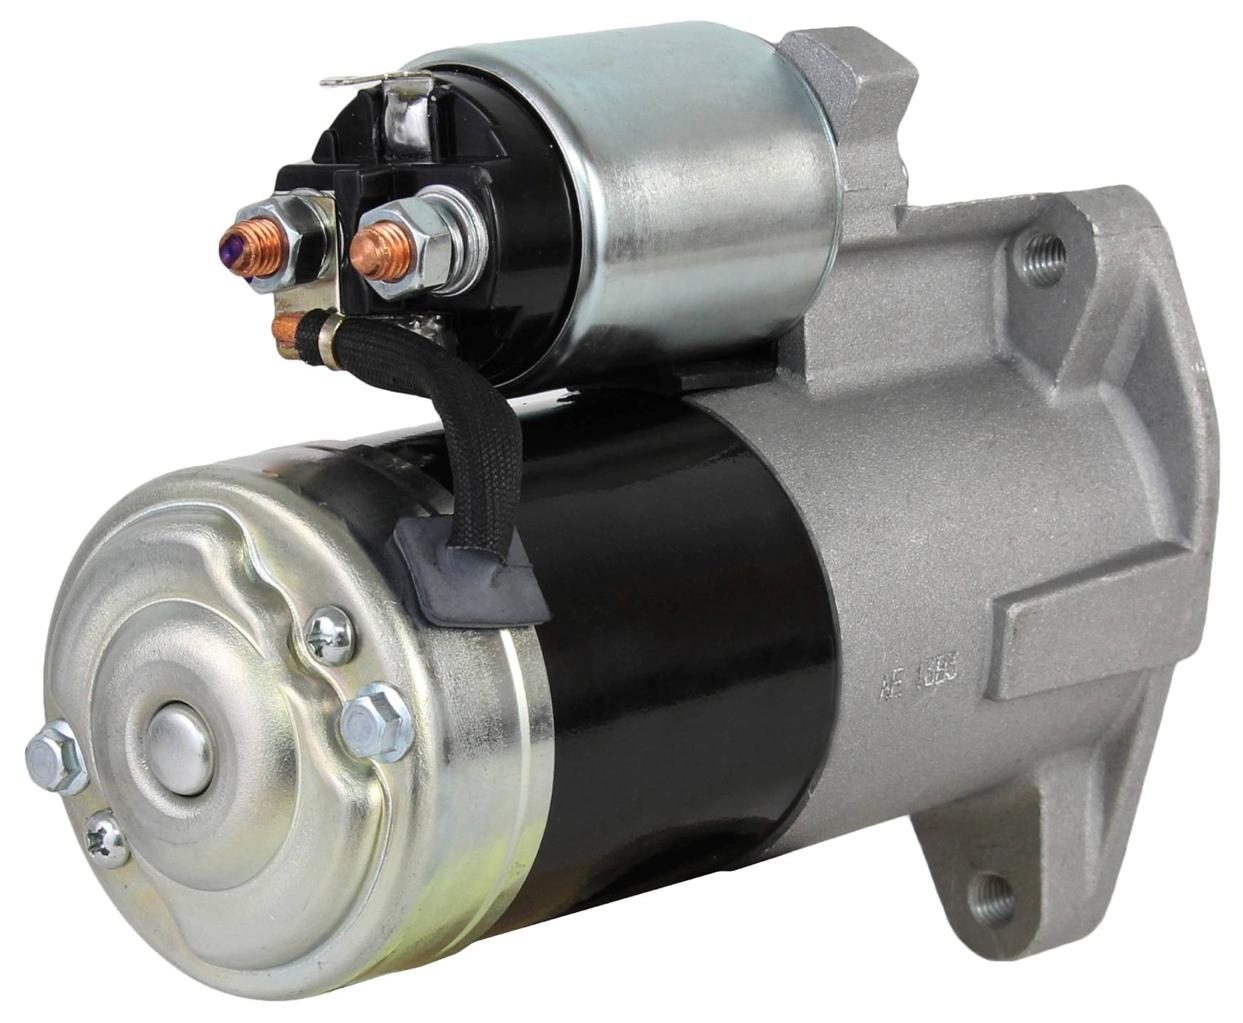 new starter motor 2003 jeep liberty wrangler tj series 2 4l m1t86782 56041436ab ebay. Black Bedroom Furniture Sets. Home Design Ideas